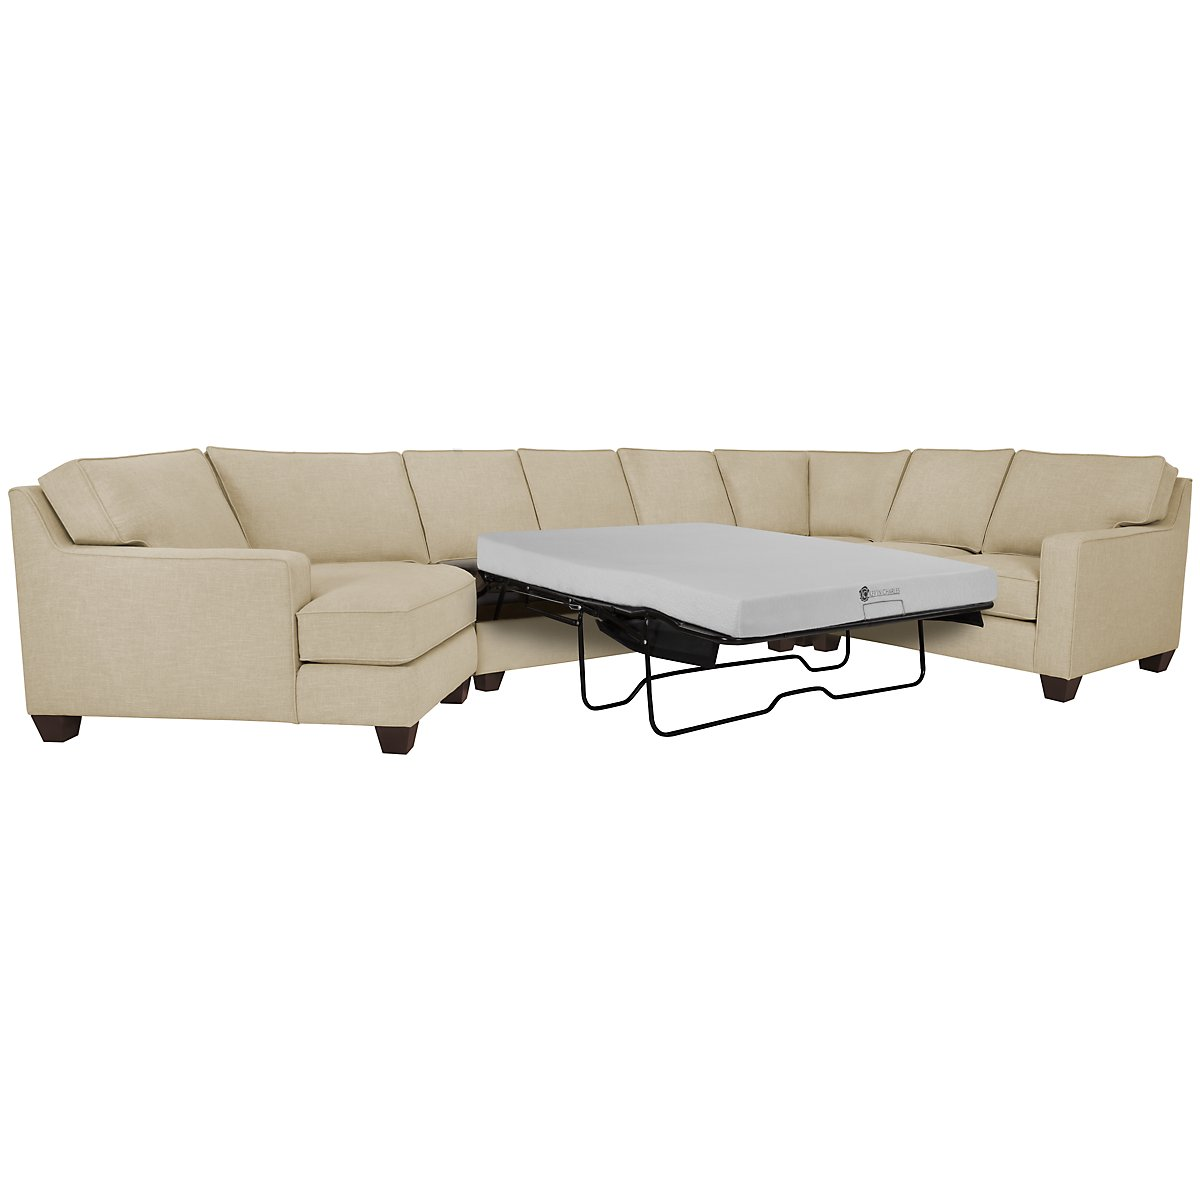 York Beige Fabric Small Left Cuddler Memory Foam Sleeper Sectional